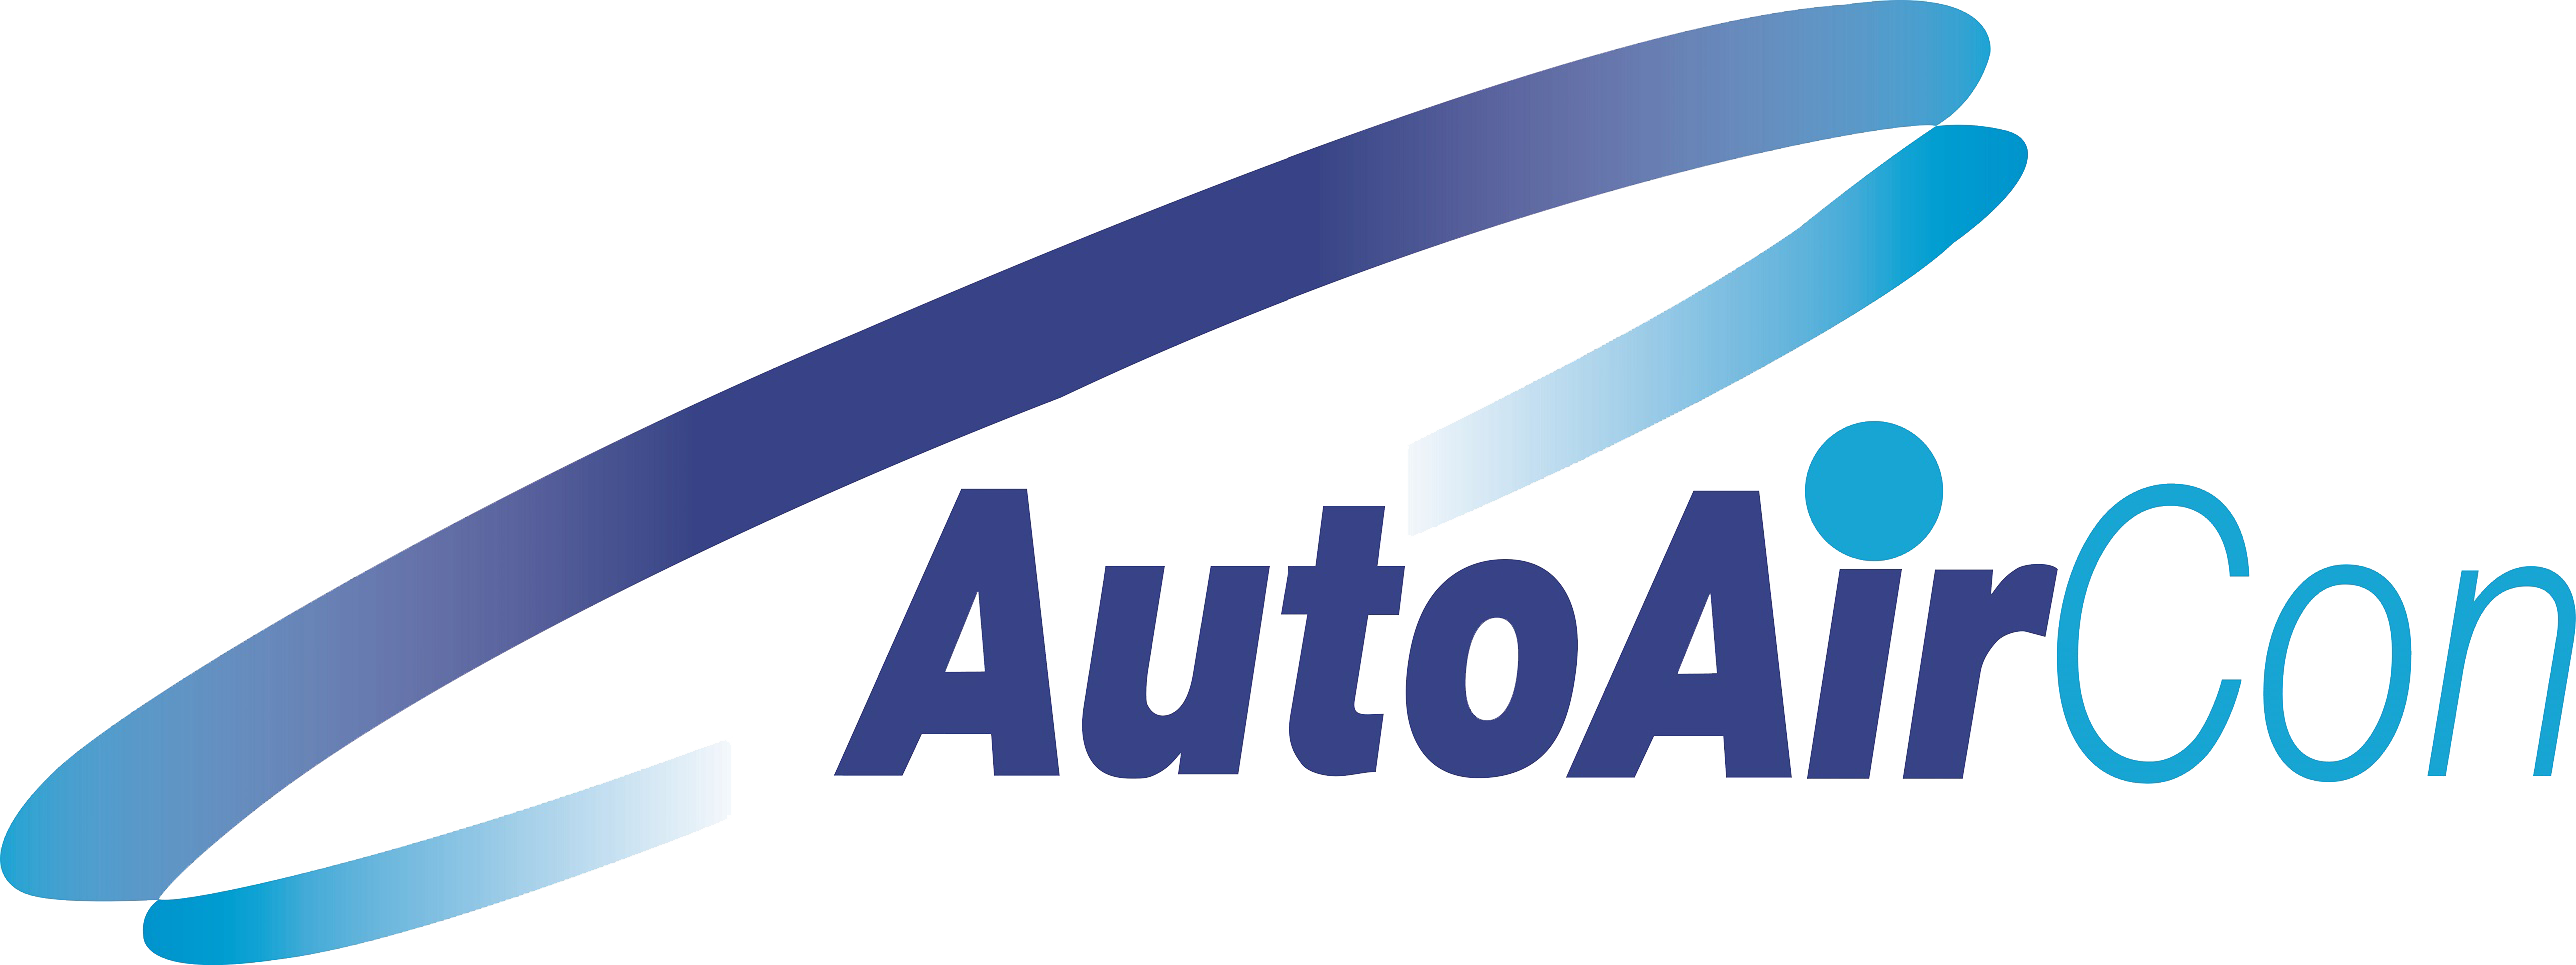 Autoaircon Exchange